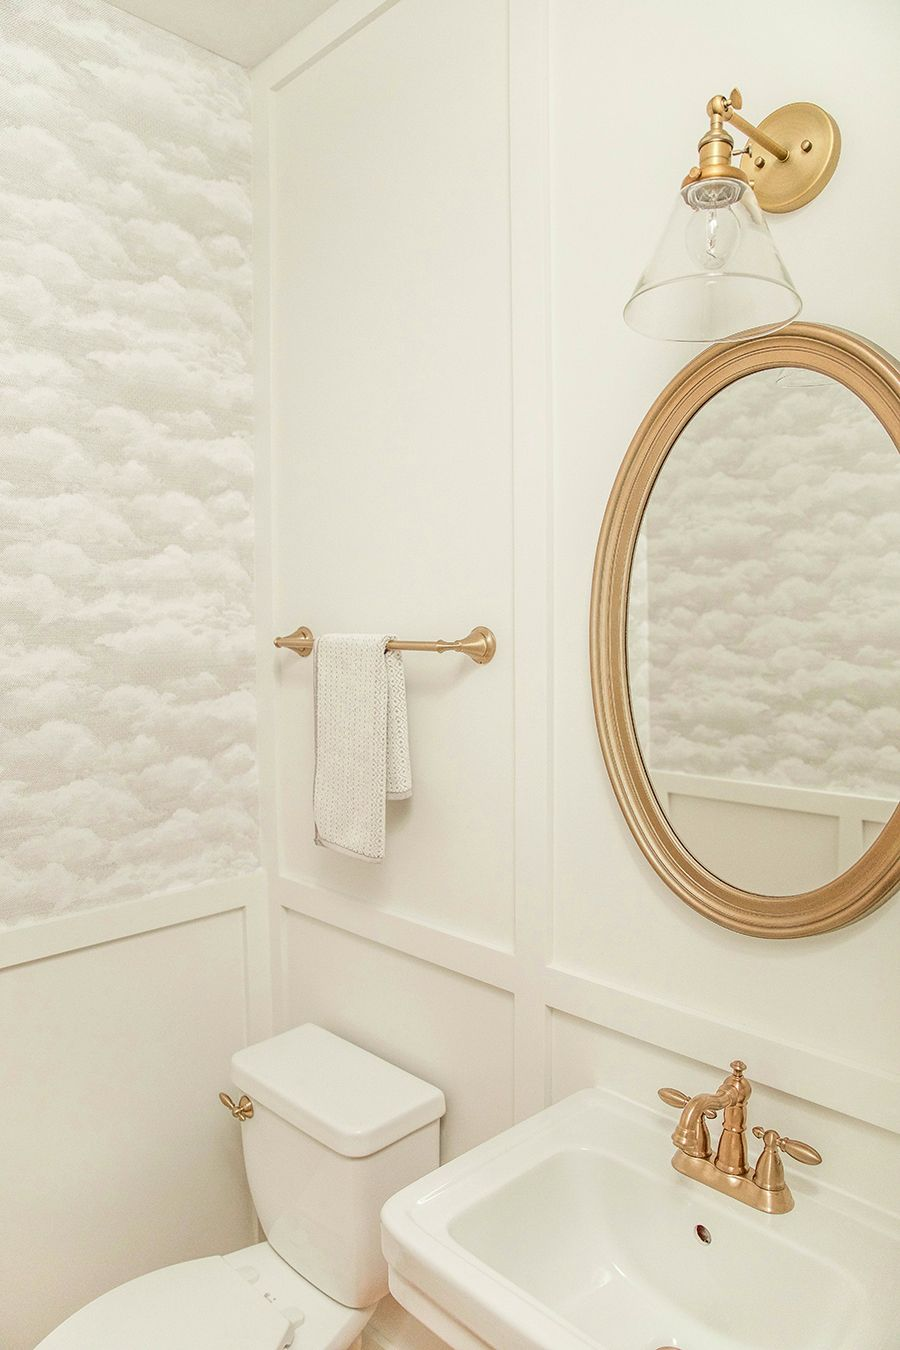 Powder Room Renovation Reveal | board and batten | cloud